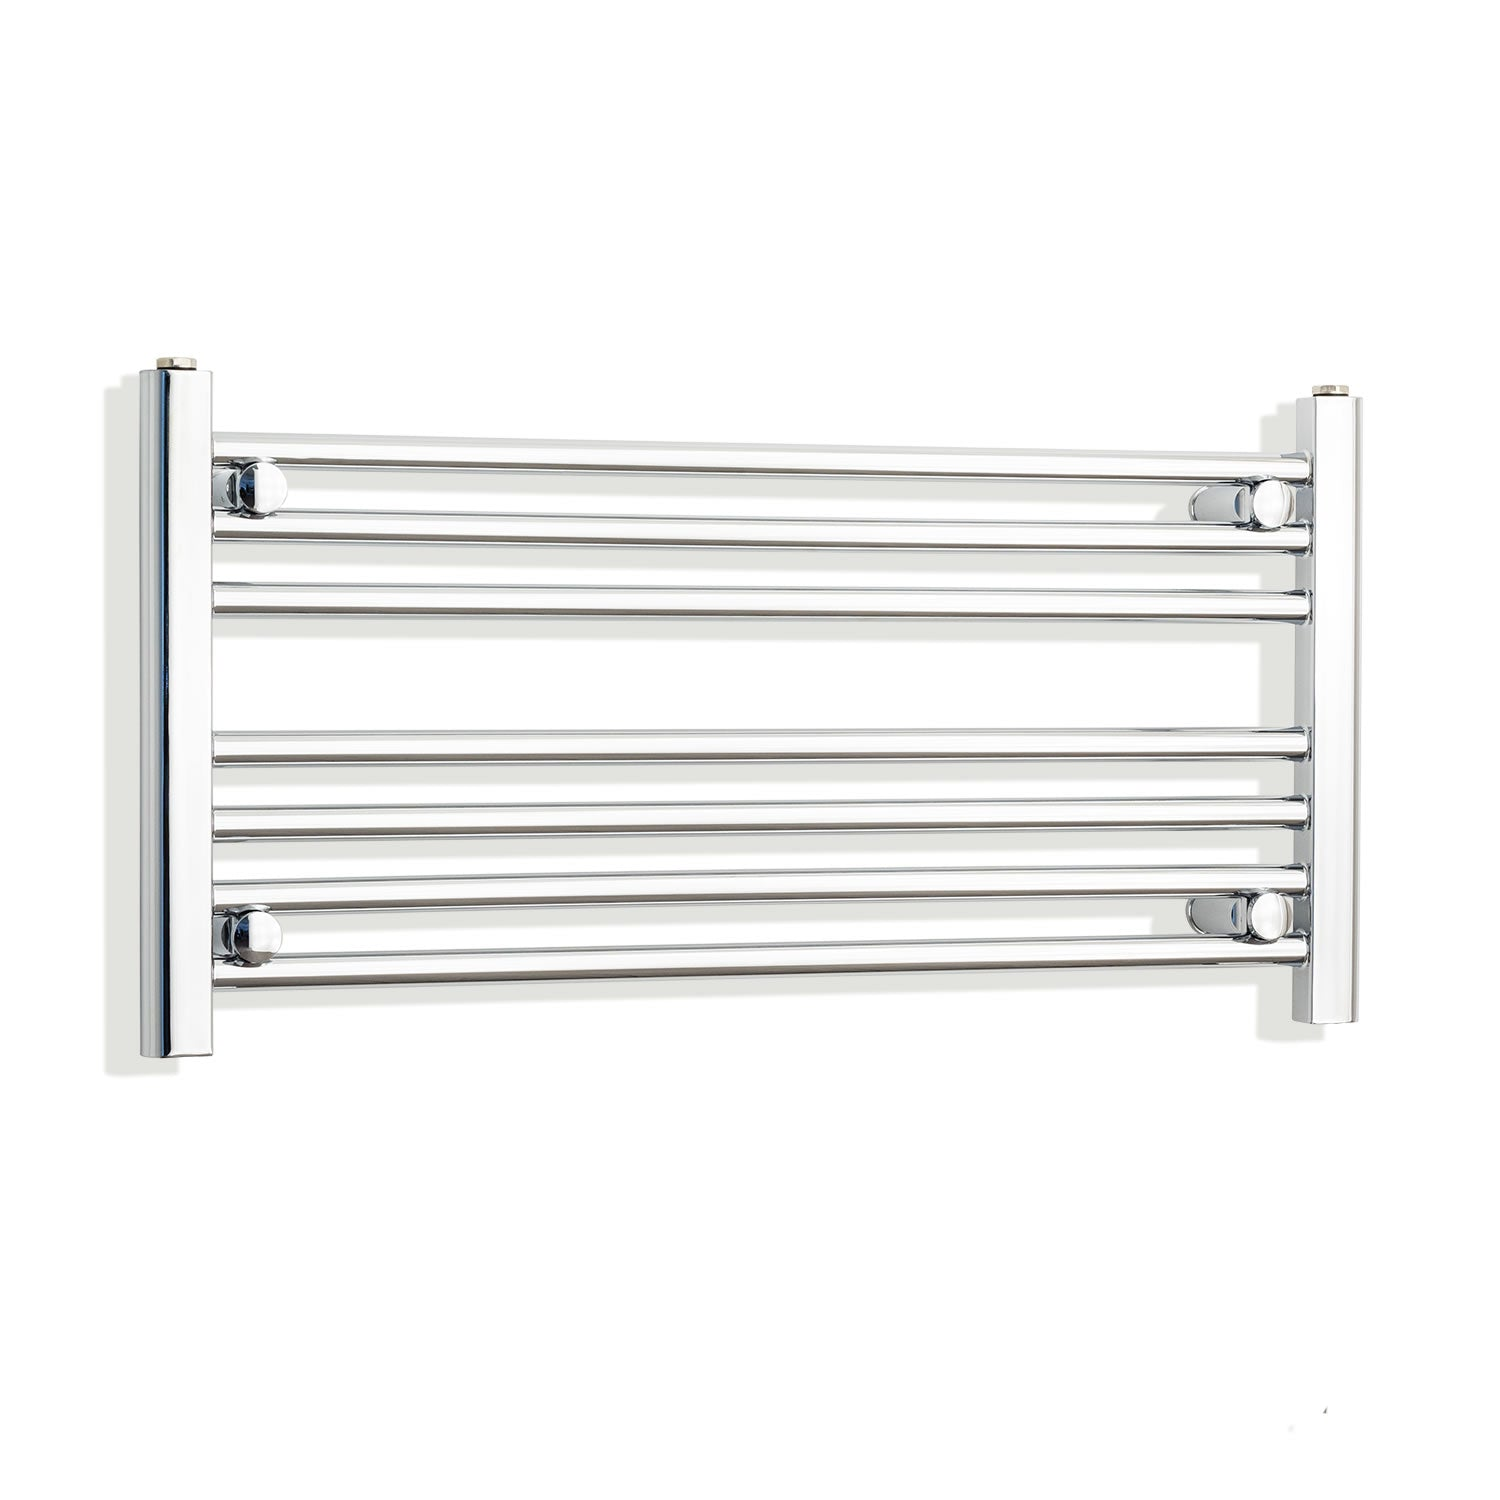 800mm Wide 400mm High Chrome Towel Rail Radiator